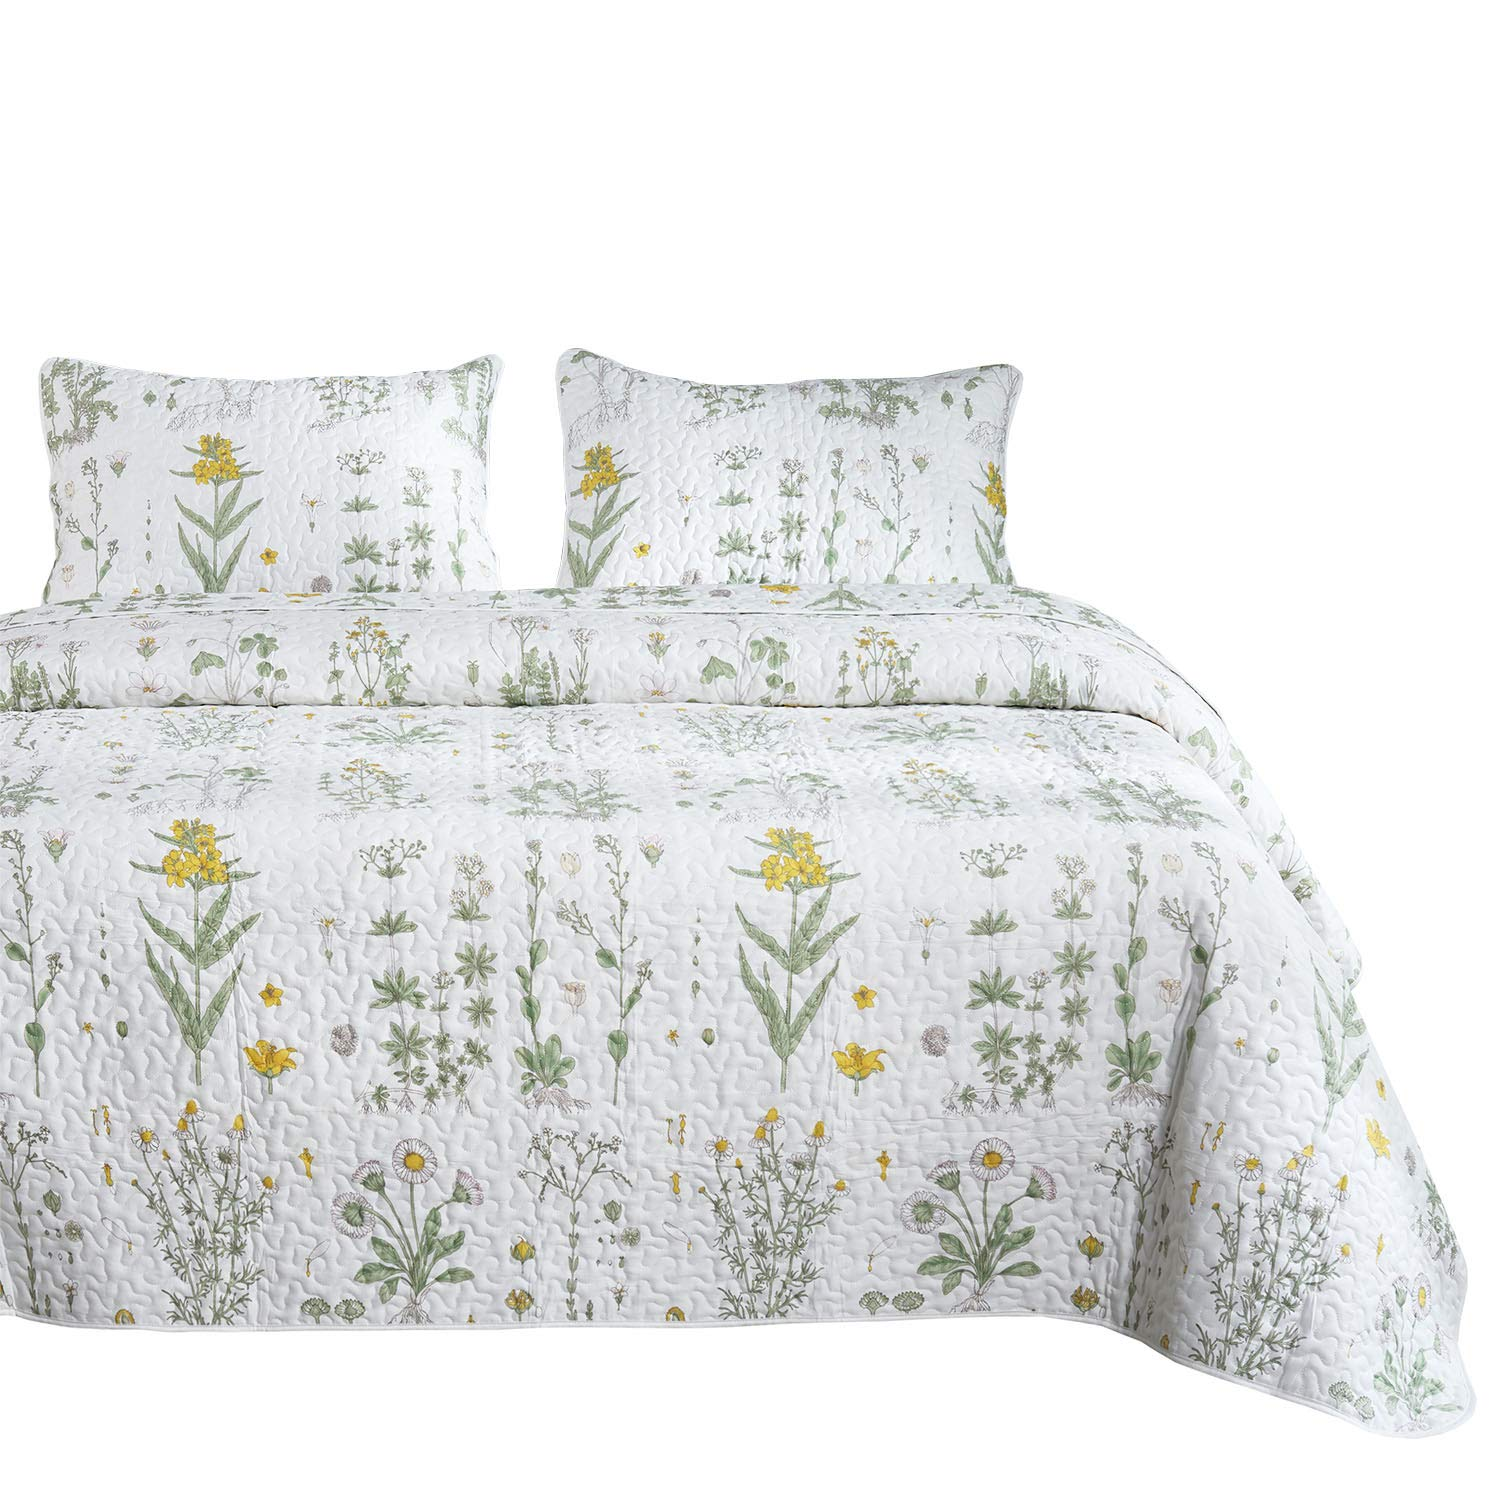 Wake In Cloud - Botanical Quilt Set, Yellow Flowers Green Leaves Floral Pattern Printed on White, 100% Cotton Fabric with Soft Microfiber Inner Fill Bedspread Coverlet Bedding (3pcs, Queen Size)